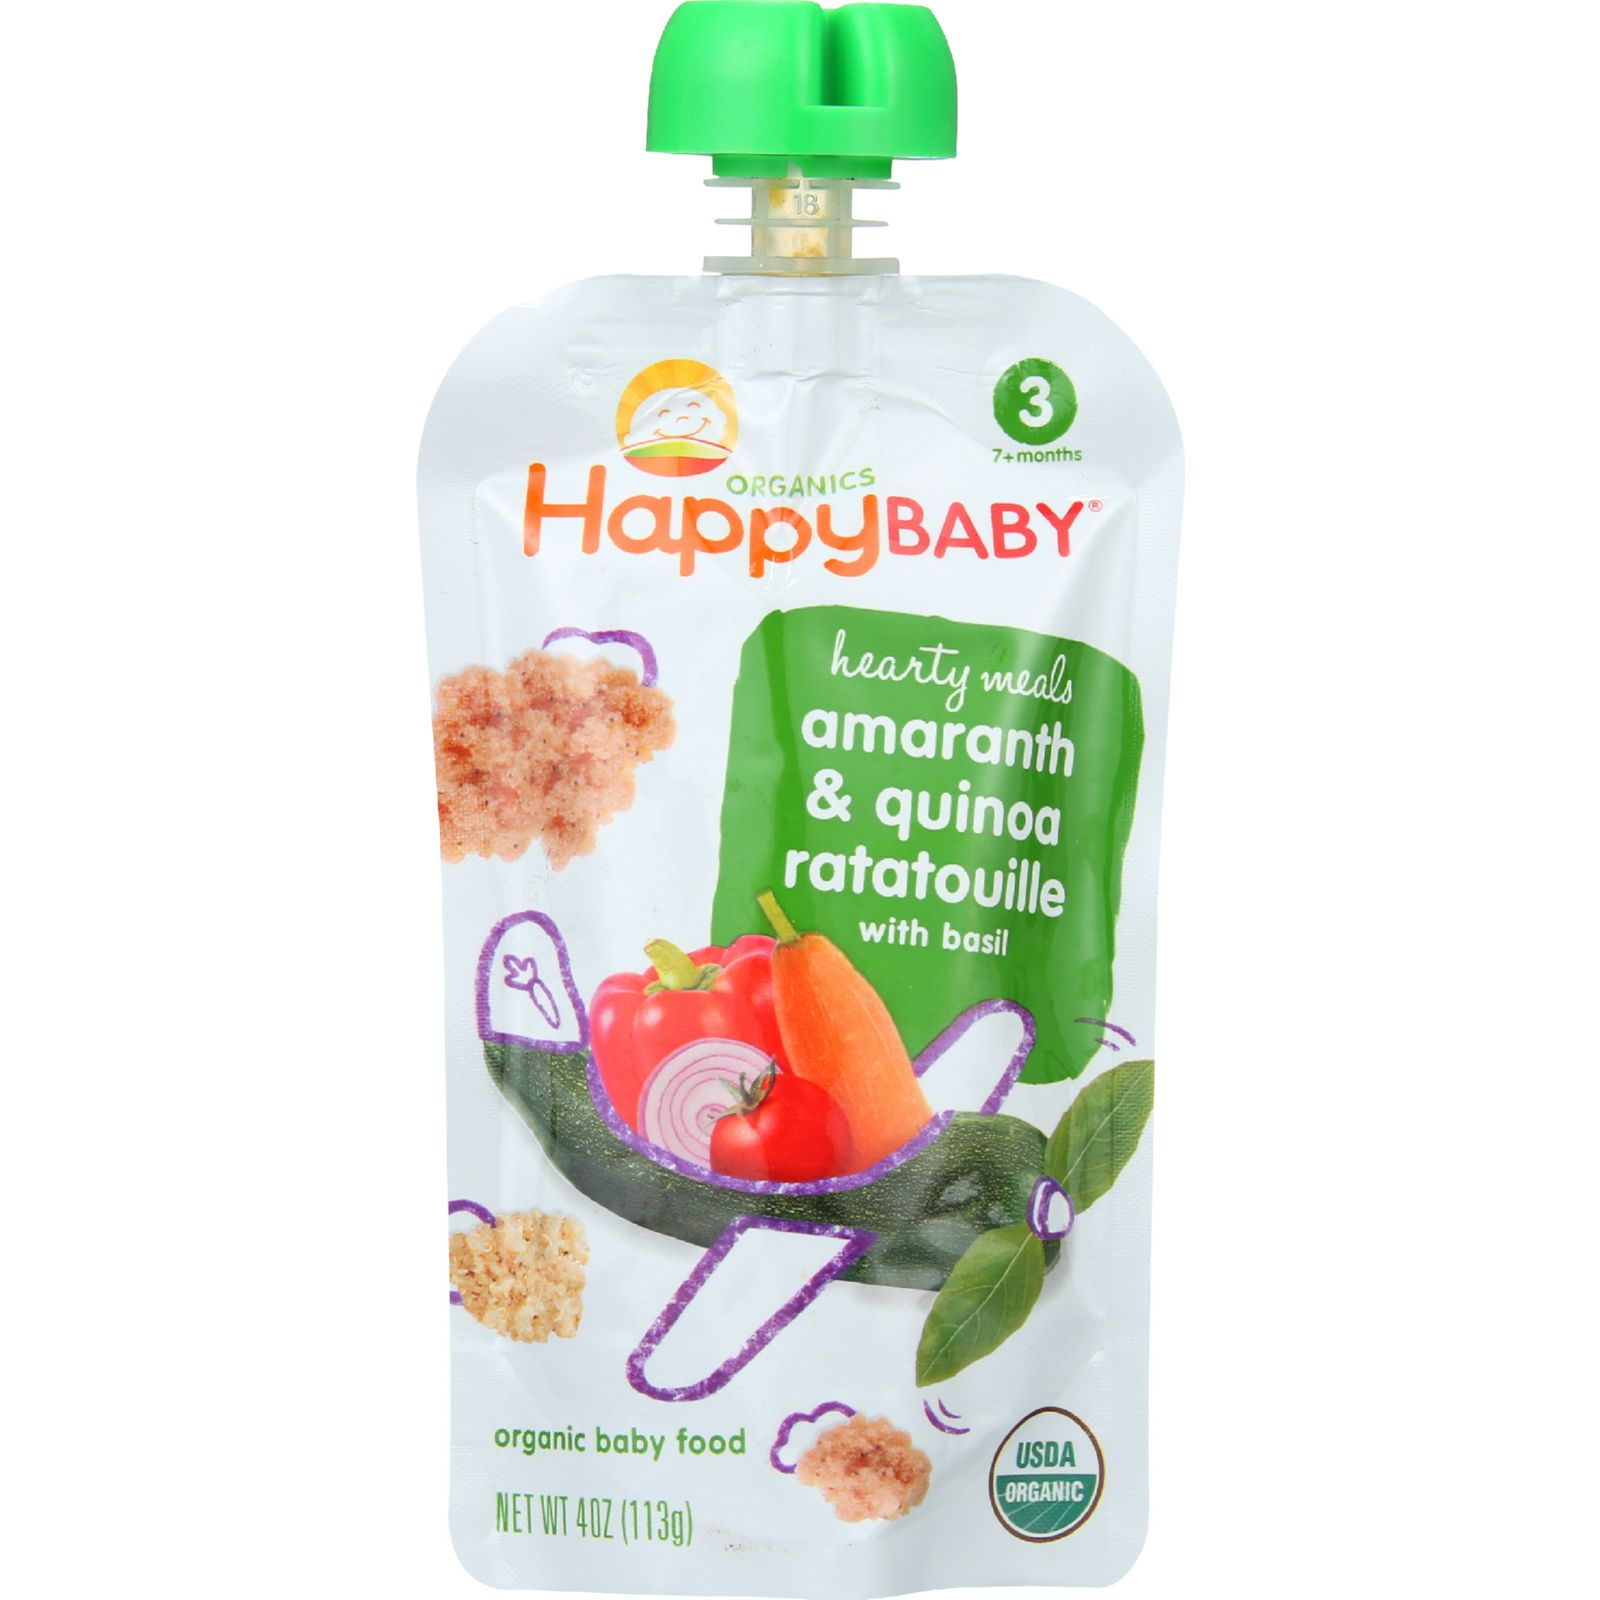 Happy Baby Baby Food - Organic - Hearty Meals - Stage 3 - Amaranth and Quinoa Ratatouille - 4 oz - case of 16